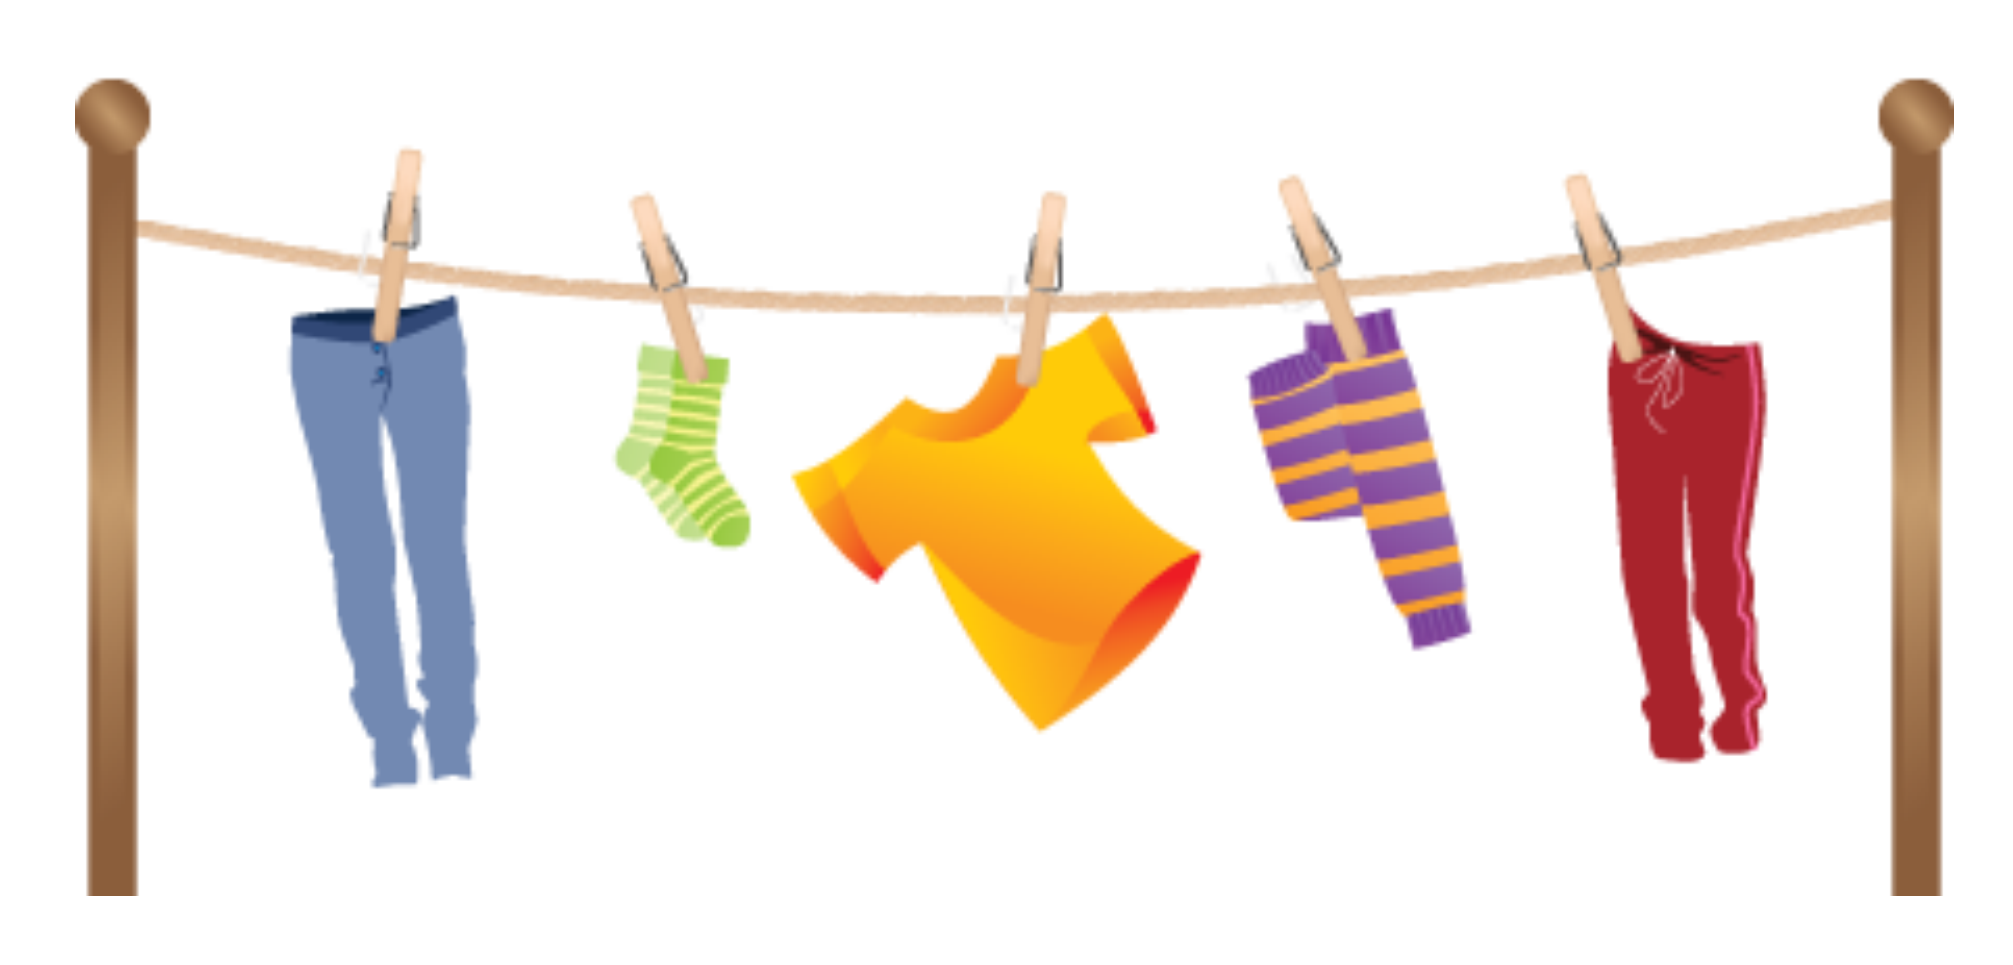 Hanging clothes clipart png. Catch the egg game